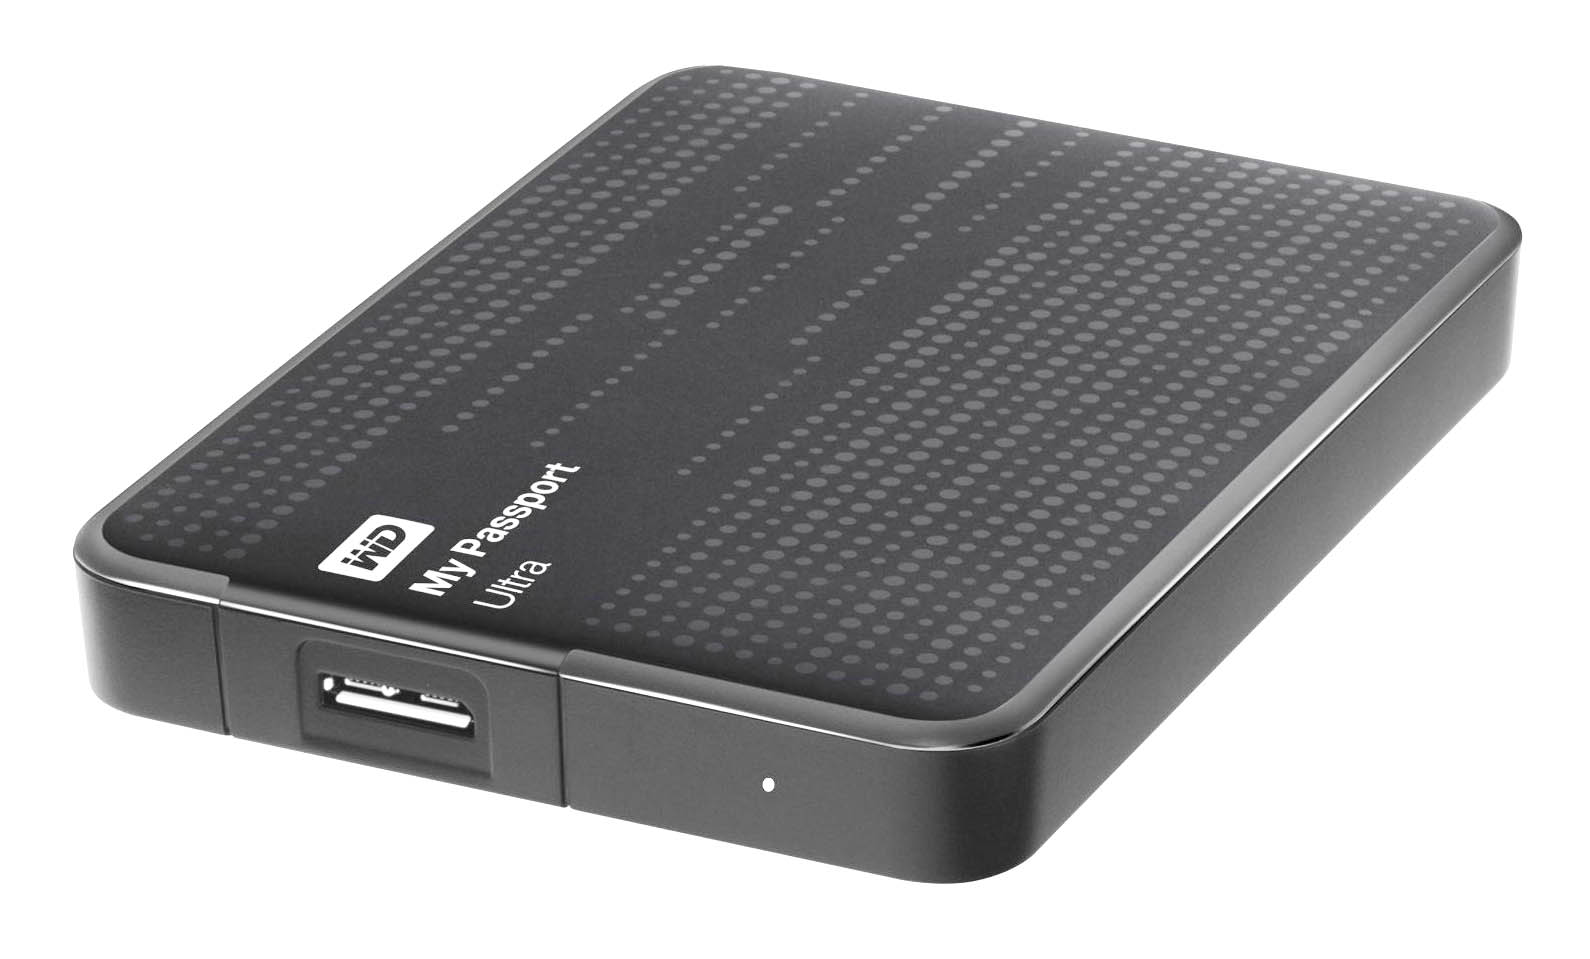 USB external hard drive for backing up my photos and documents